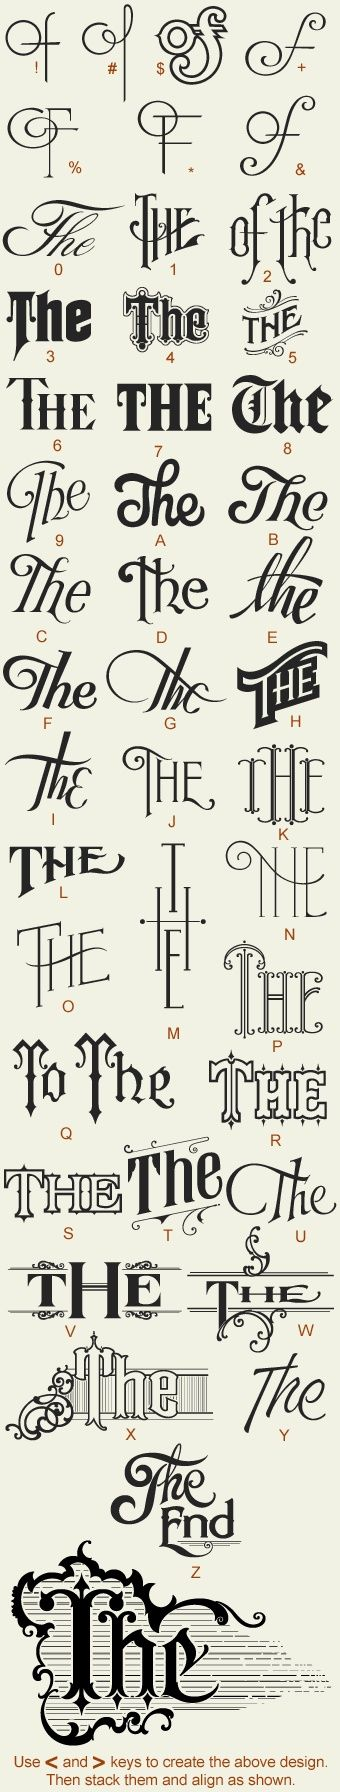 tattoo letter designs a-z